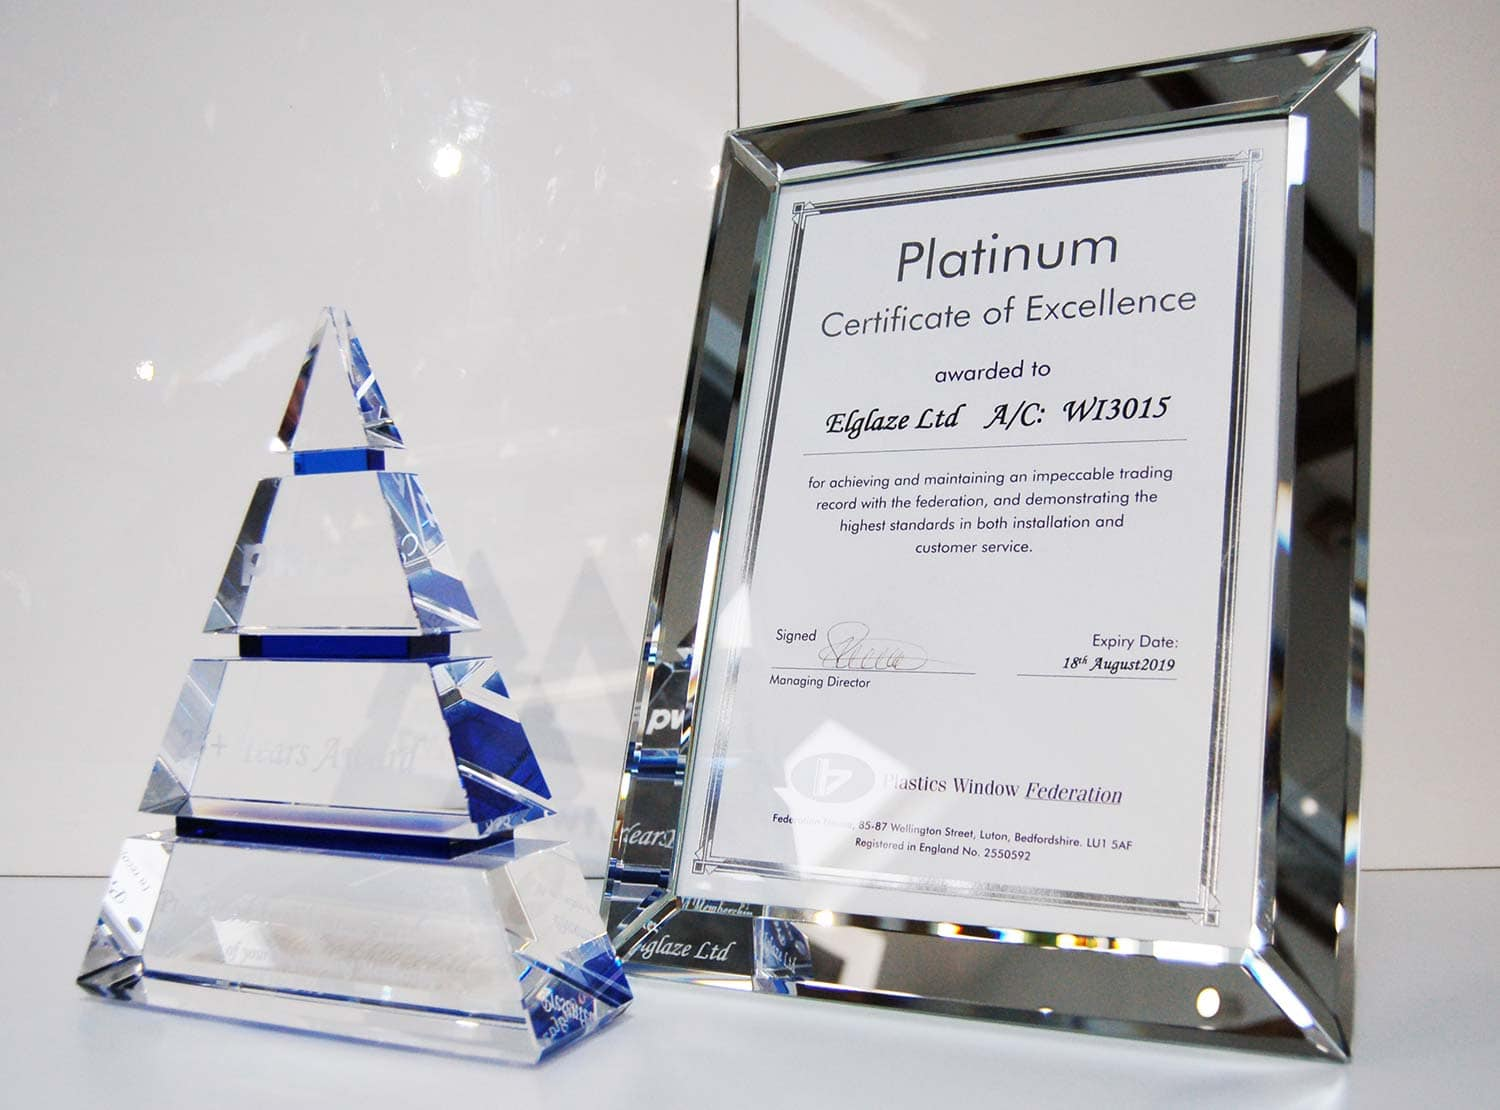 Platinum certificate of excellence and trophy awarded to Elglaze by the Plastics Window Federation